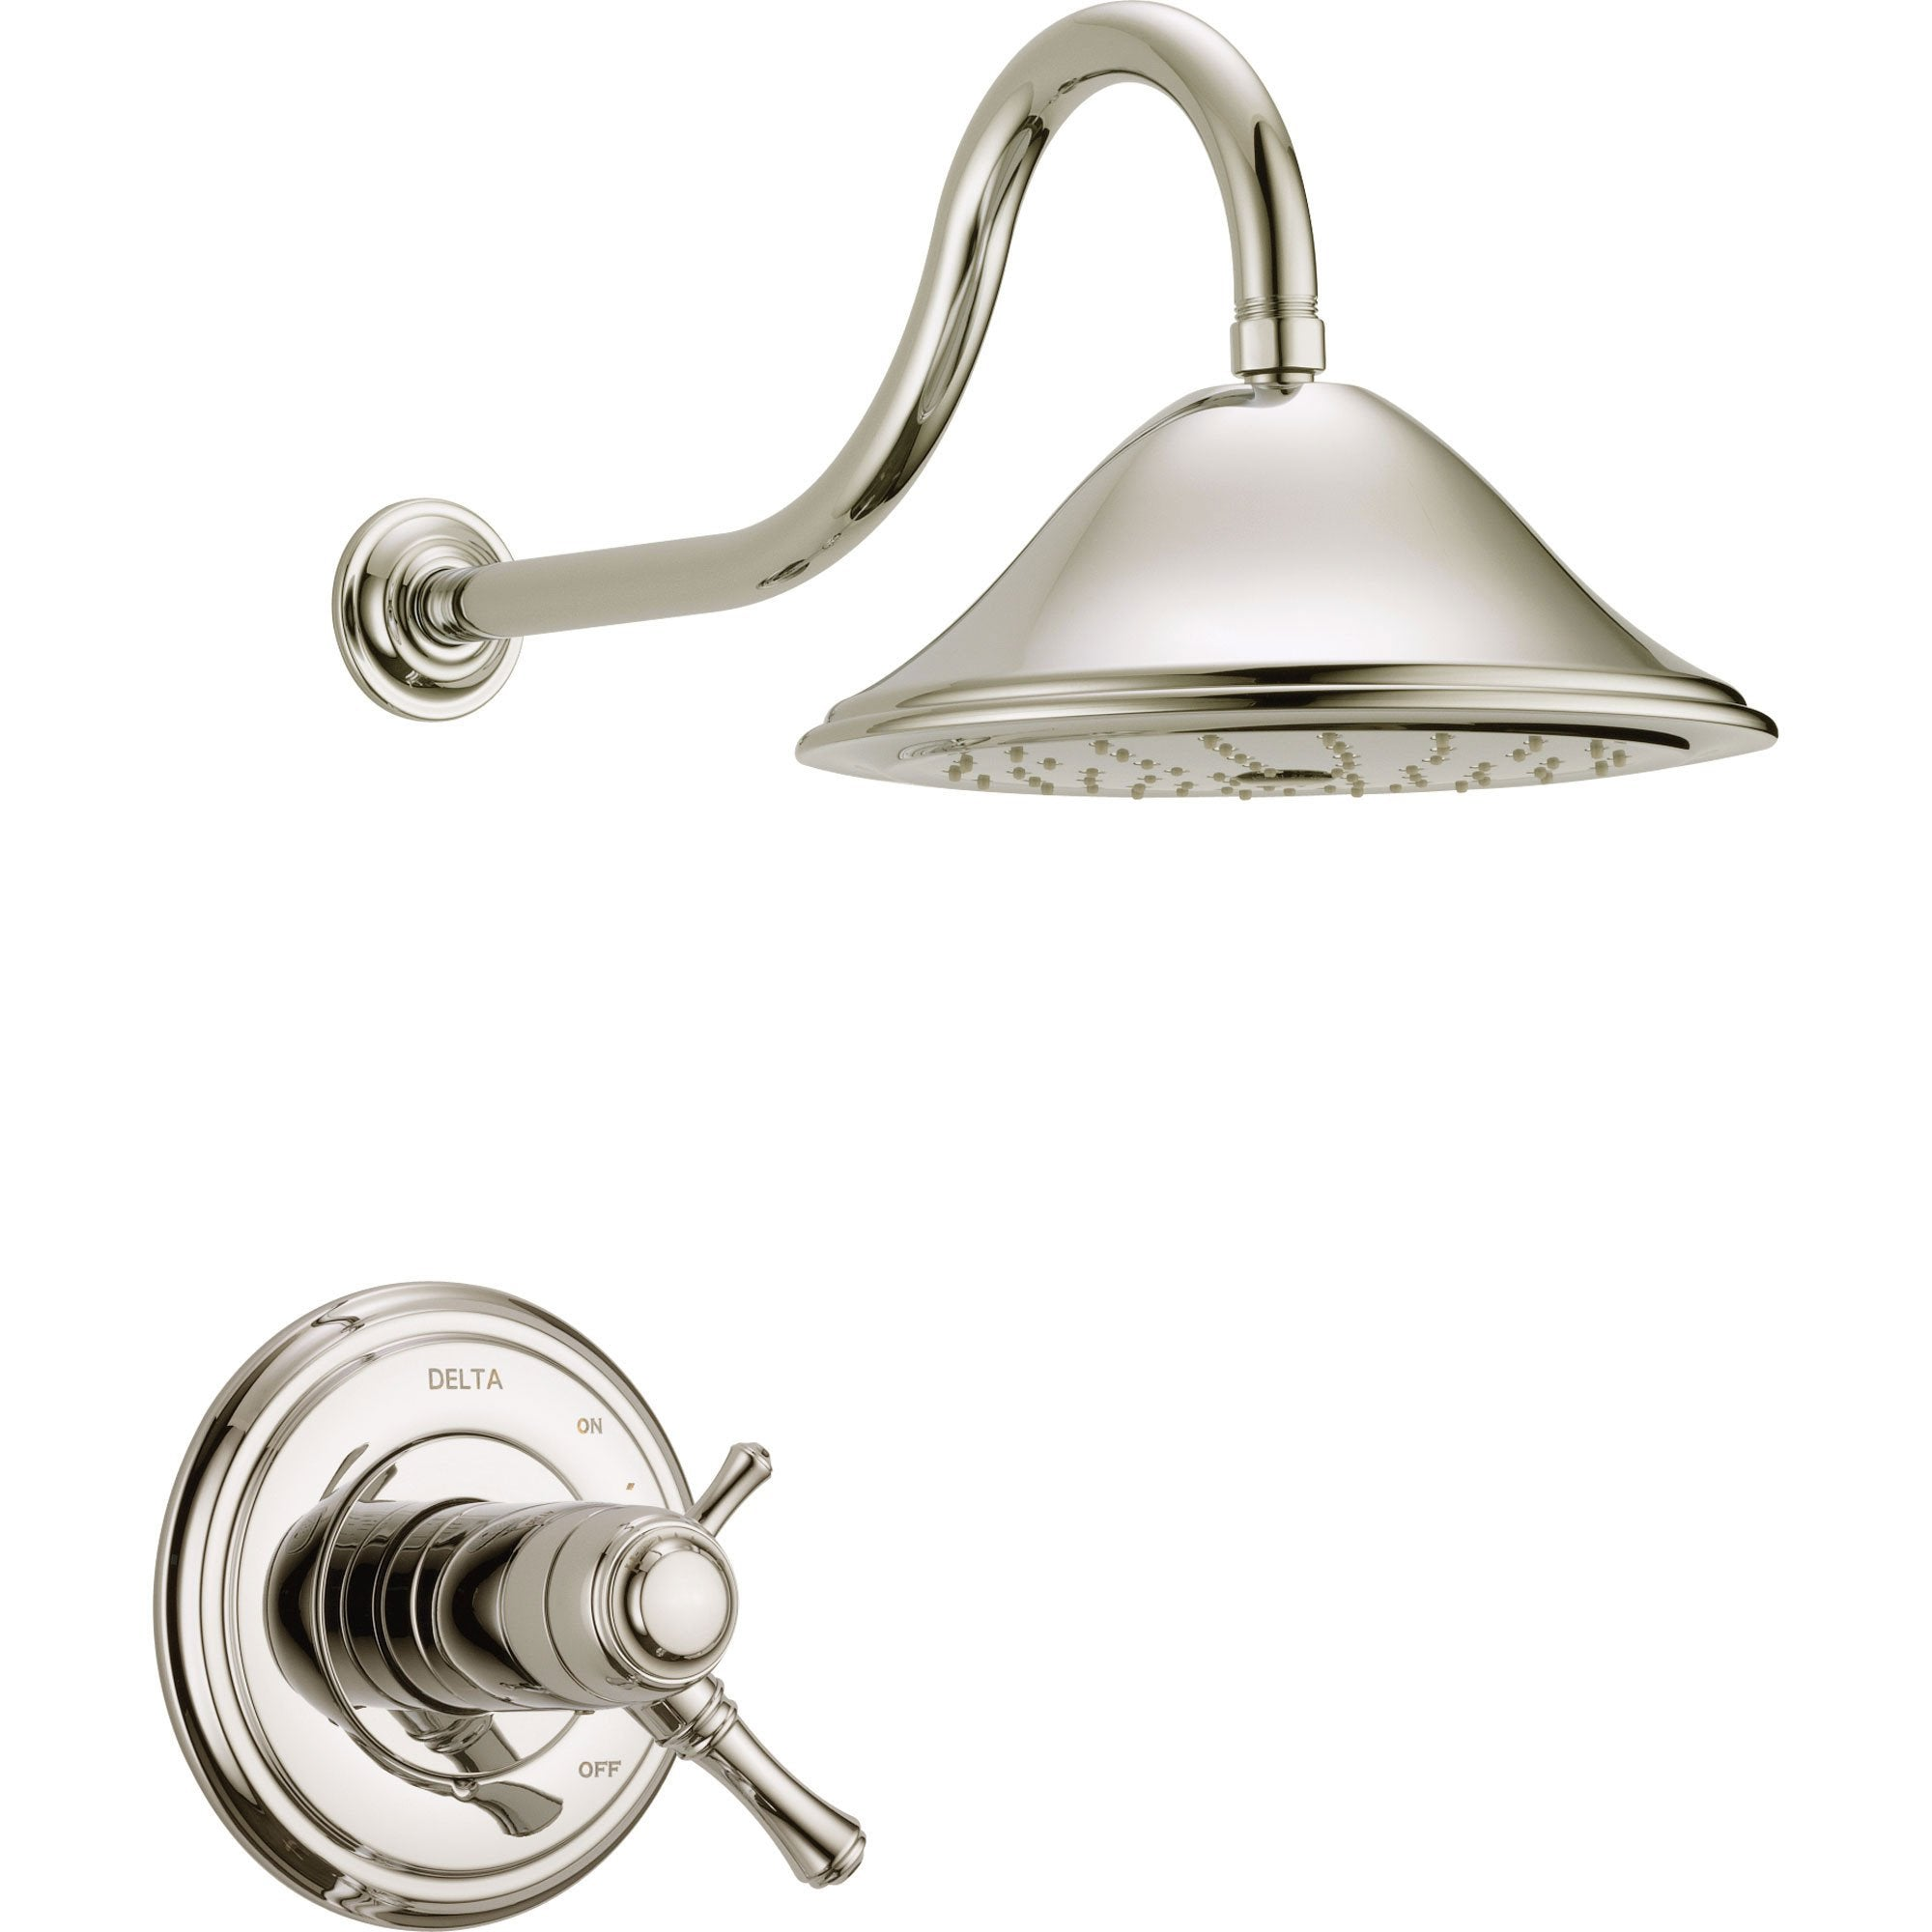 Delta Cassidy Polished Nickel Thermostatic Large Shower Faucet with Valve D853V